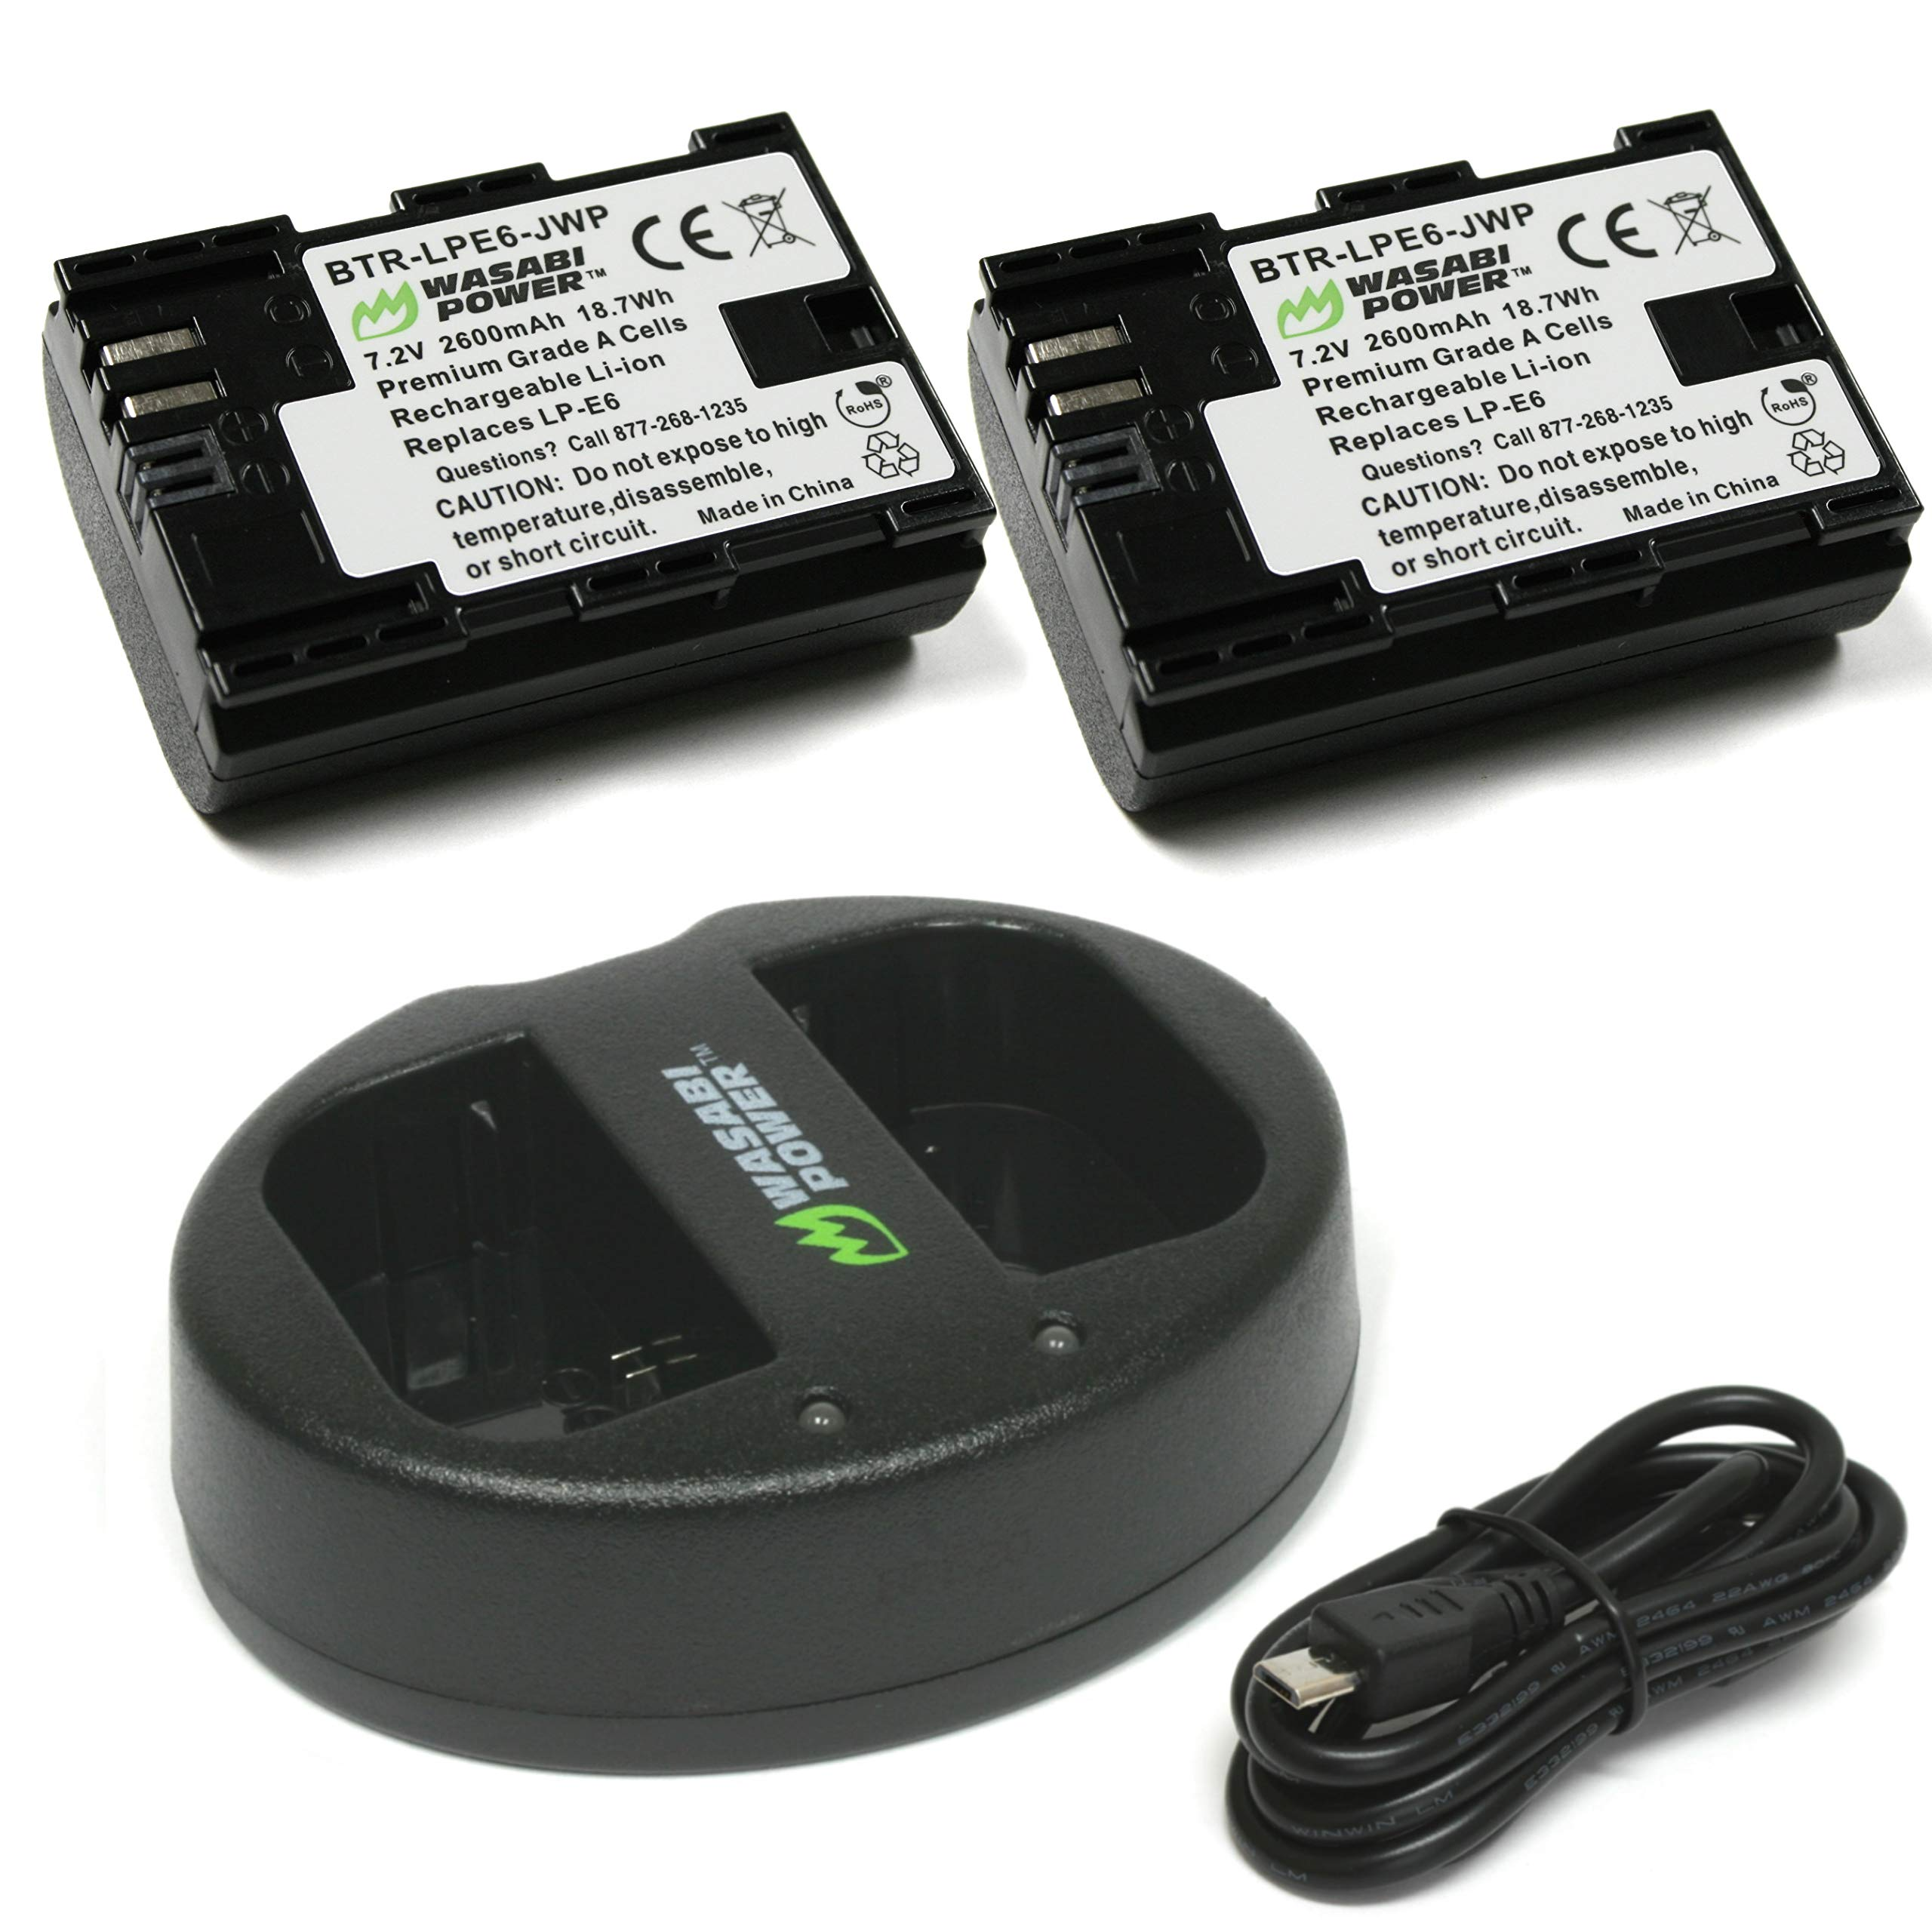 Wasabi Power LP-E6, LP-E6N Battery (2-Pack) and Dual Charger for Canon EOS 5D Mark II/III/IV, EOS 5DS, 5DS R, EOS 6D, 6D Mark II, EOS 7D, 7D Mark II, EOS 60D, 60Da, 70D, 80D, EOS R, XC10, XC15 by Wasabi Power